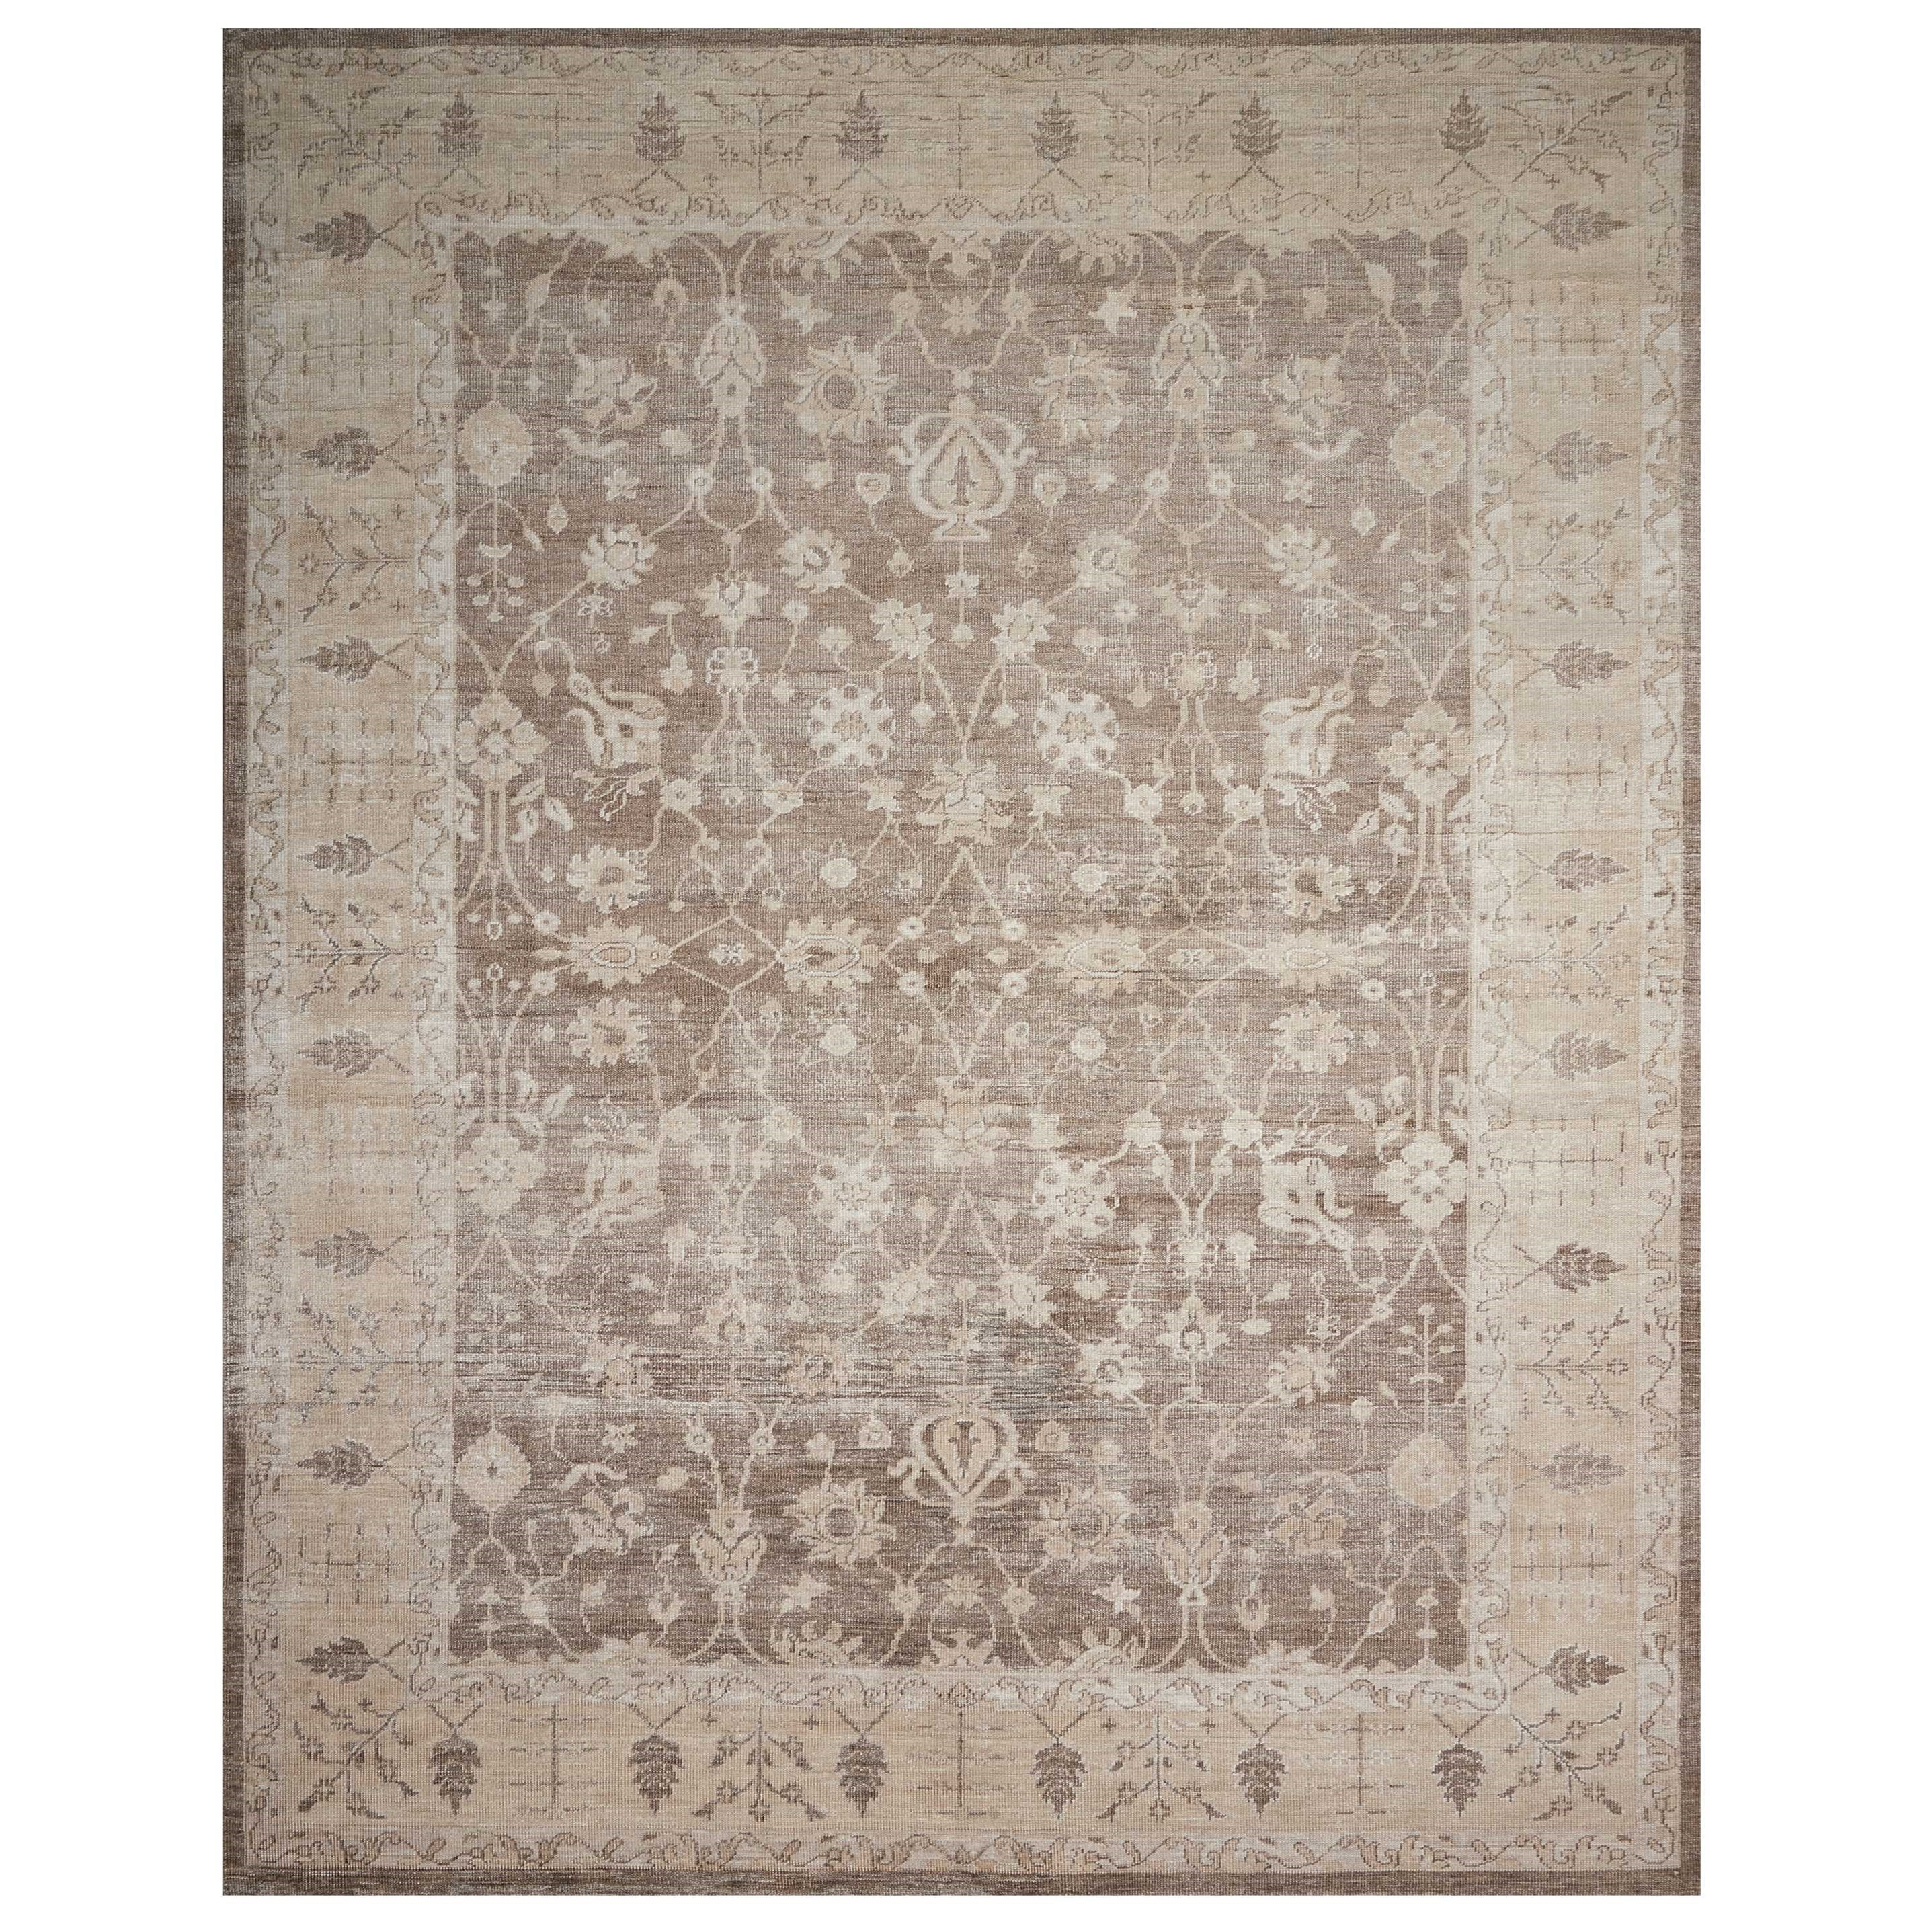 "Aldora1 9'9"" X 13'9"" Sand Rug by Nourison at Home Collections Furniture"